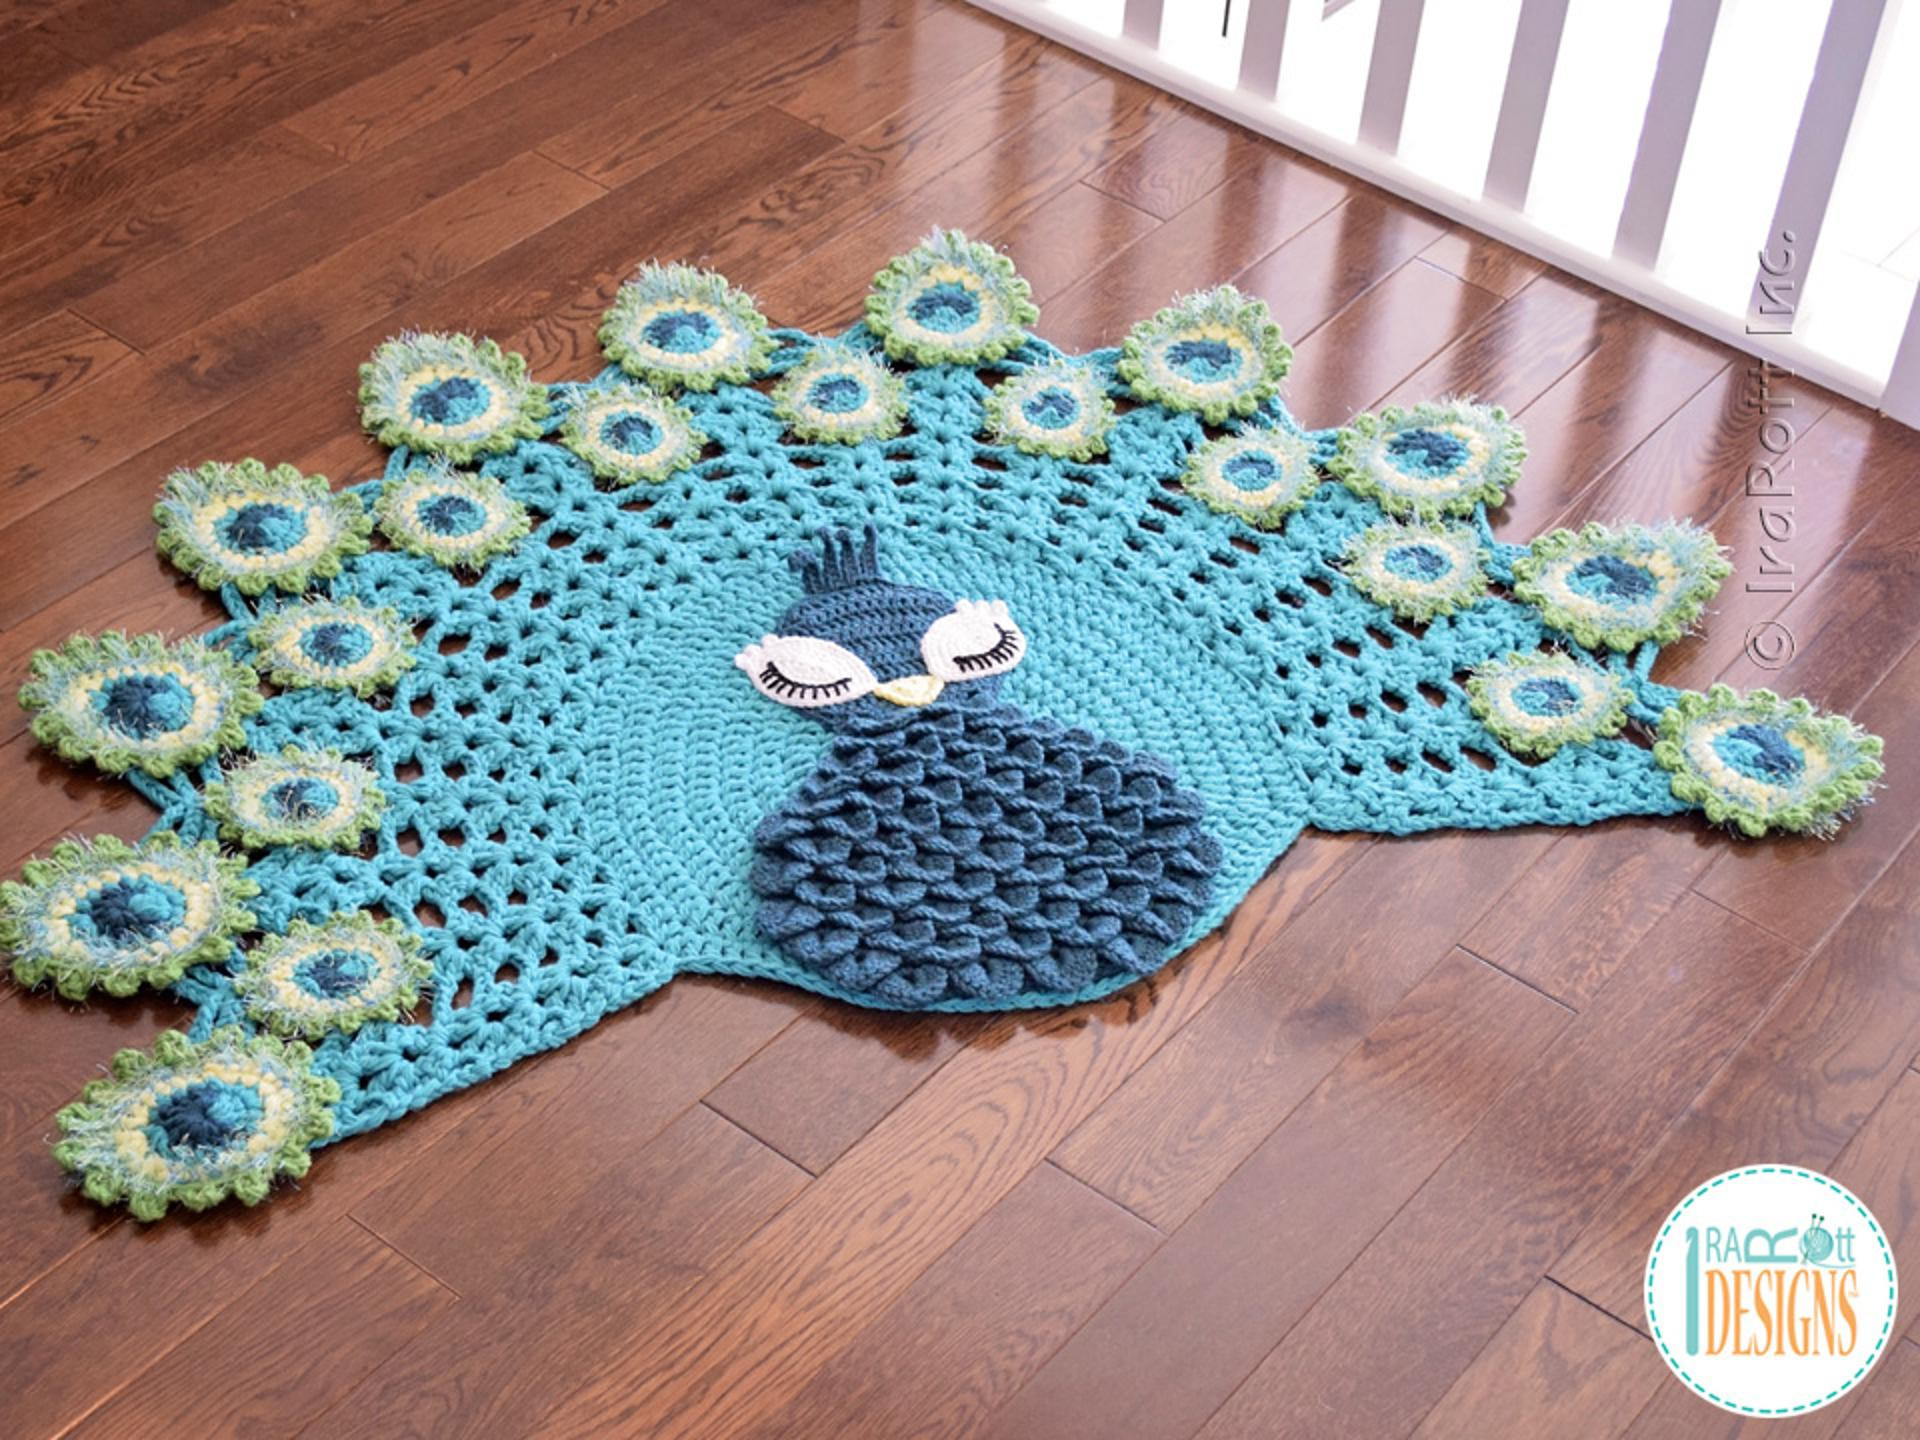 Unusual Crochet Patterns Best Of 17 Unusual Unique Crochet Patterns to Shake Things Up Of Adorable 46 Pictures Unusual Crochet Patterns